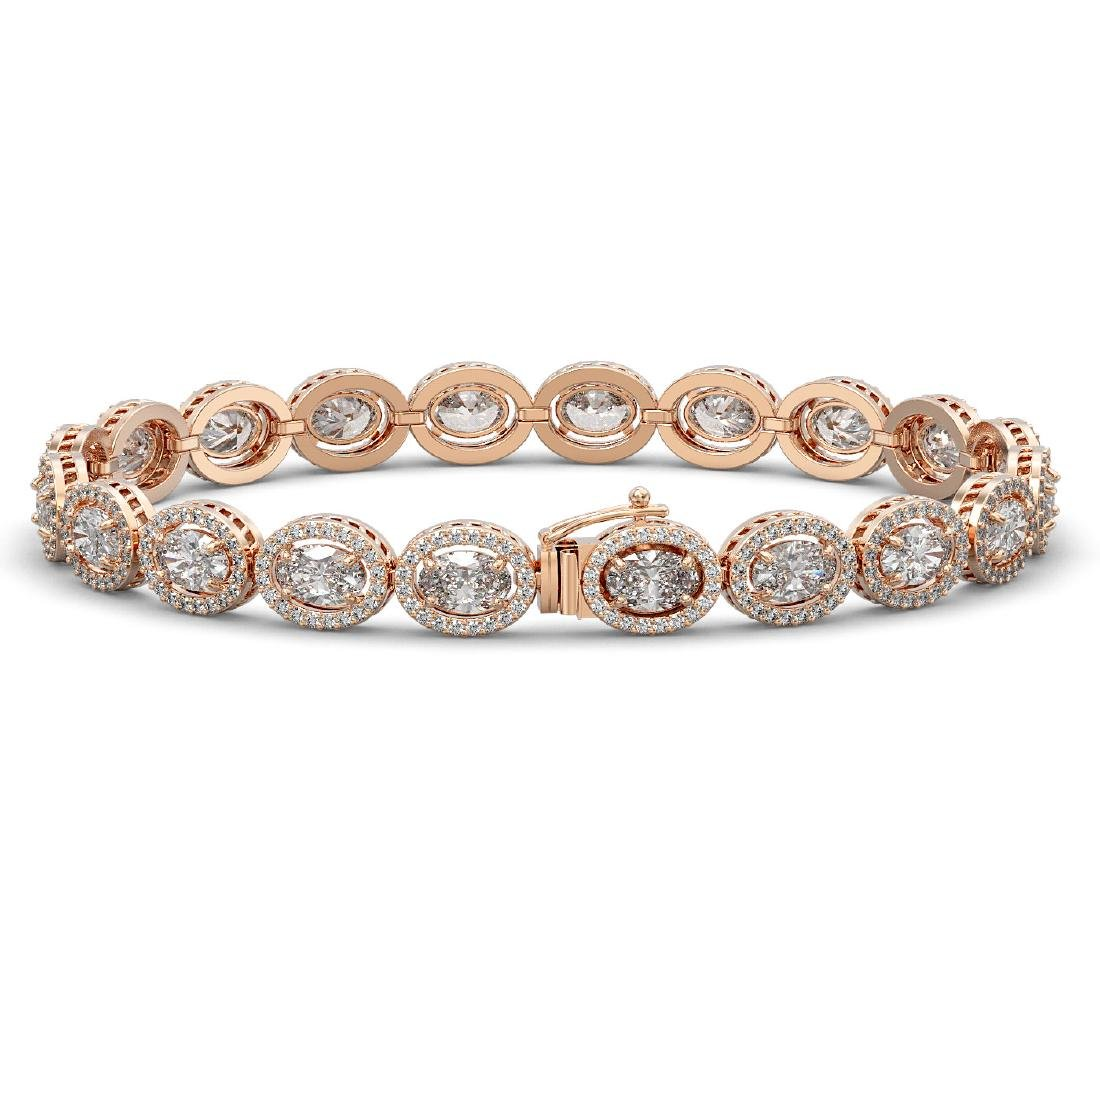 15.20 CTW Oval Diamond Designer Bracelet 18K Rose Gold - 2